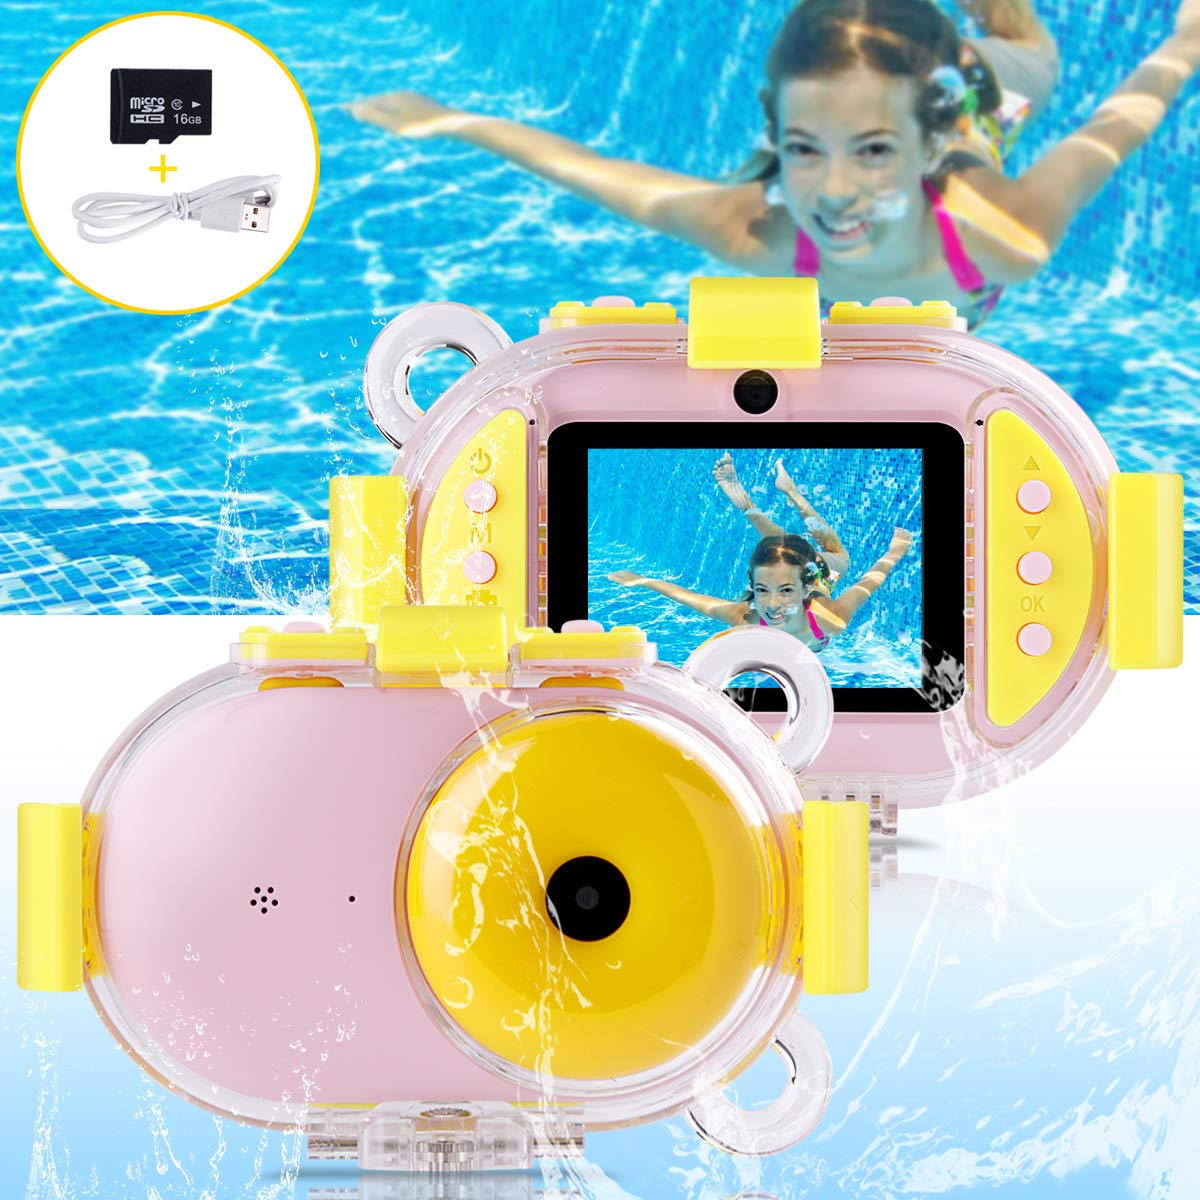 Kids Camera, OPOLEMIN Kids Waterproof Camera Kids Video Camera with Sound Playback Underwater Digital Camera Camcorderfor Kids with 16G Memory Card for Children's Day Birthday Trip Beach Swimming by OPOLEMIN (Image #1)